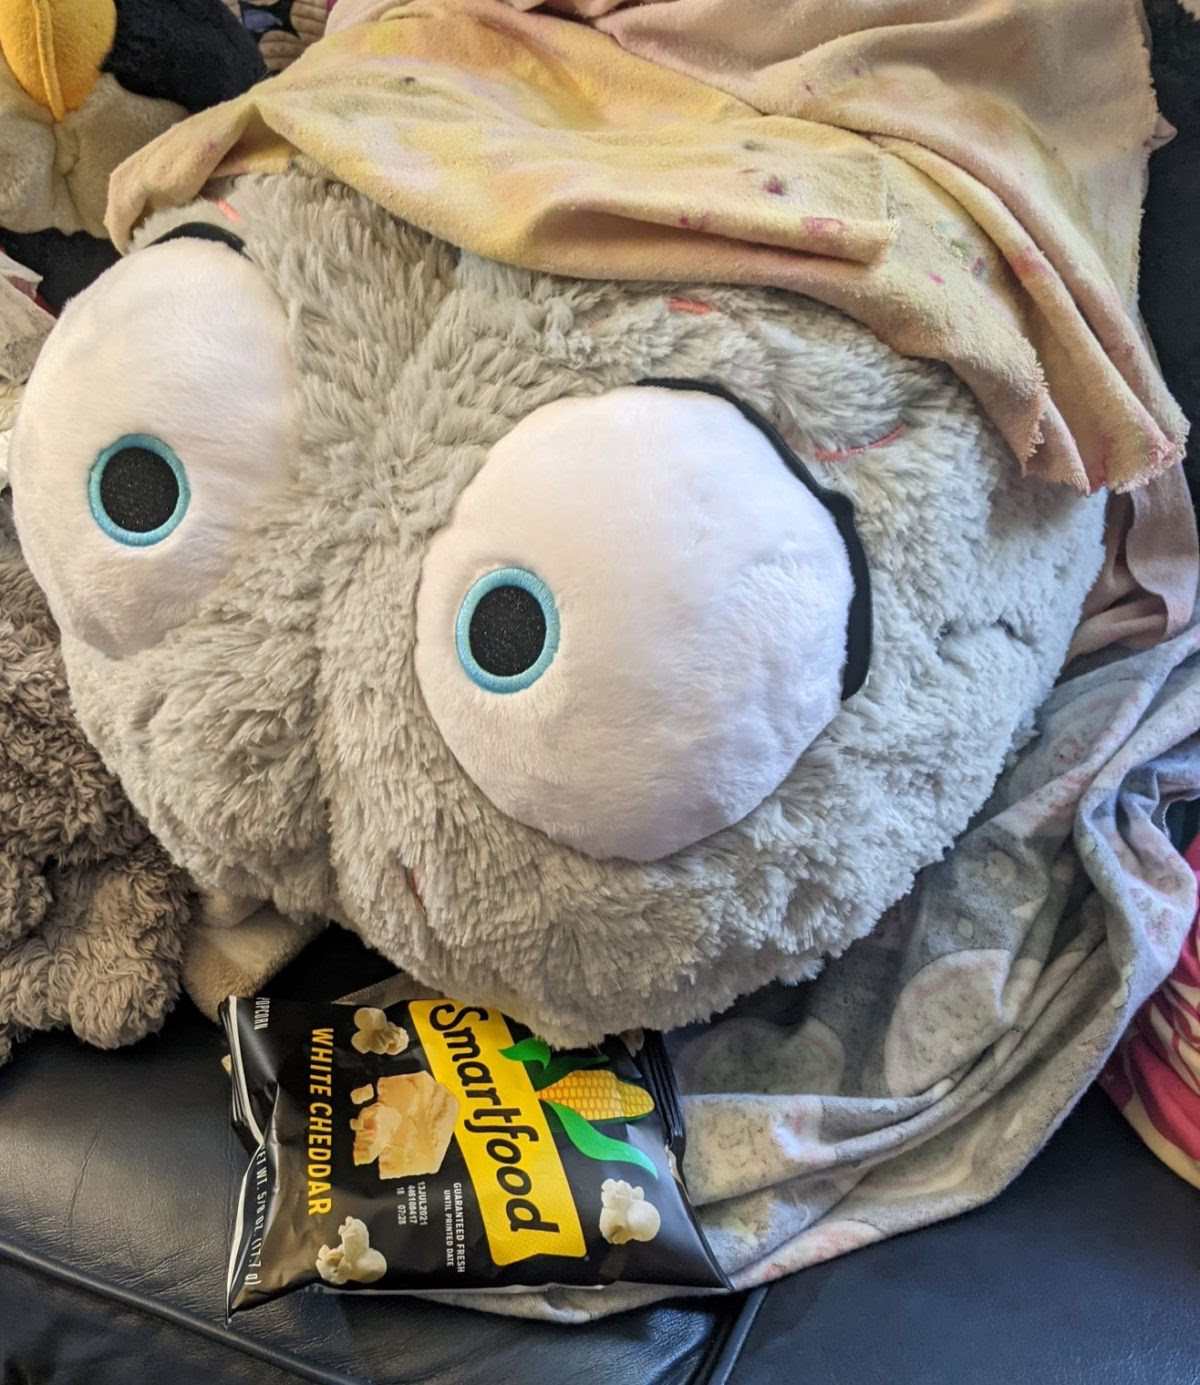 A gray plush brain with big eyes sits on a couch and appears to eat a bag of chips